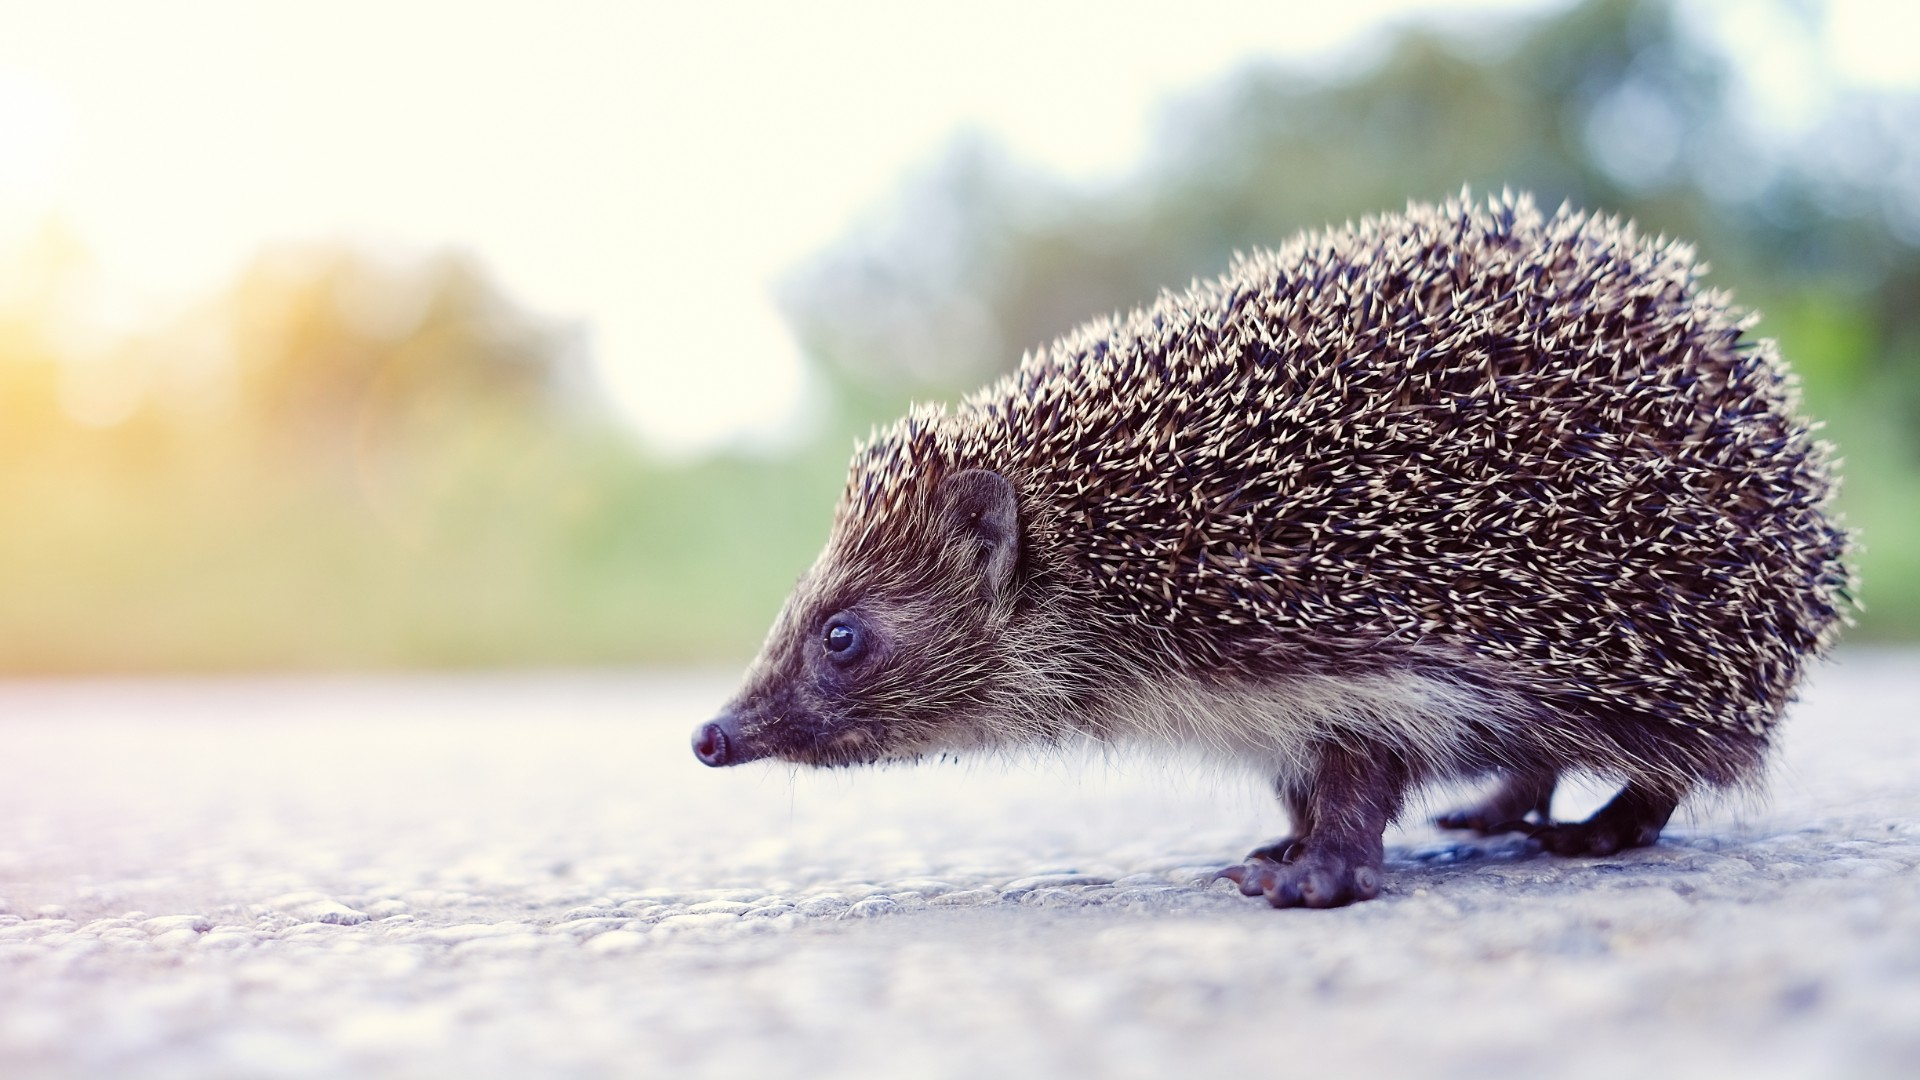 New road signs to help reduce wildlife collisions